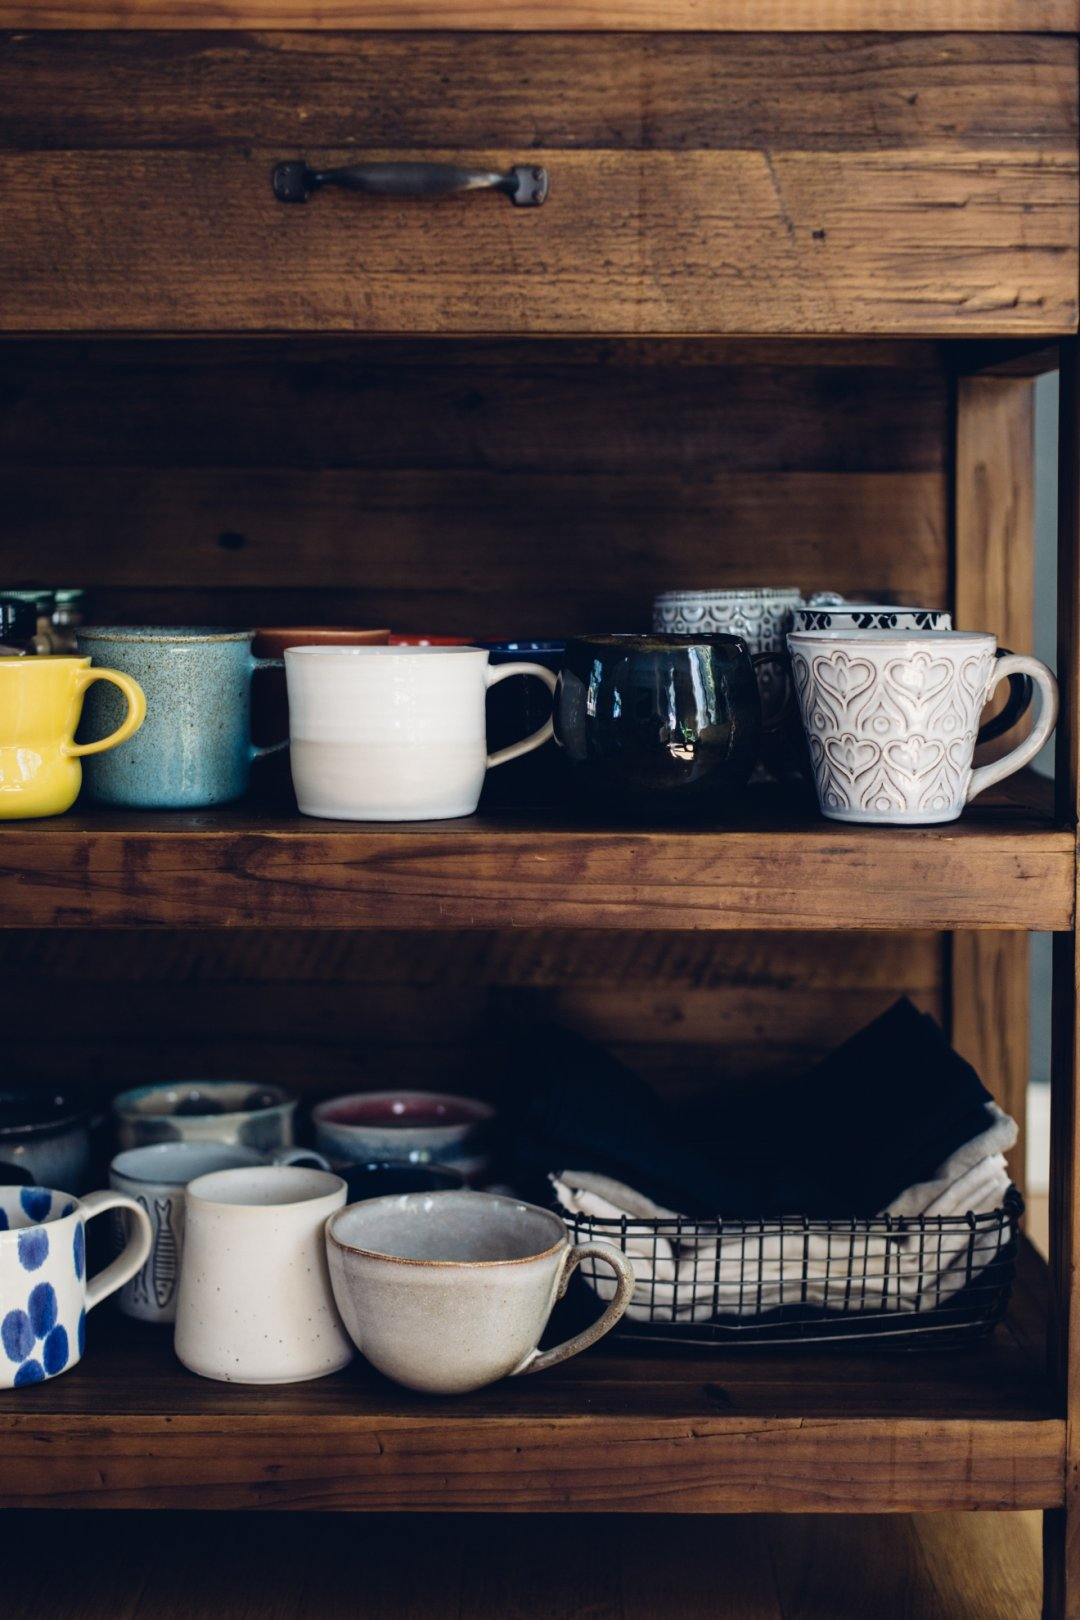 Shelves with all different artisan mugs